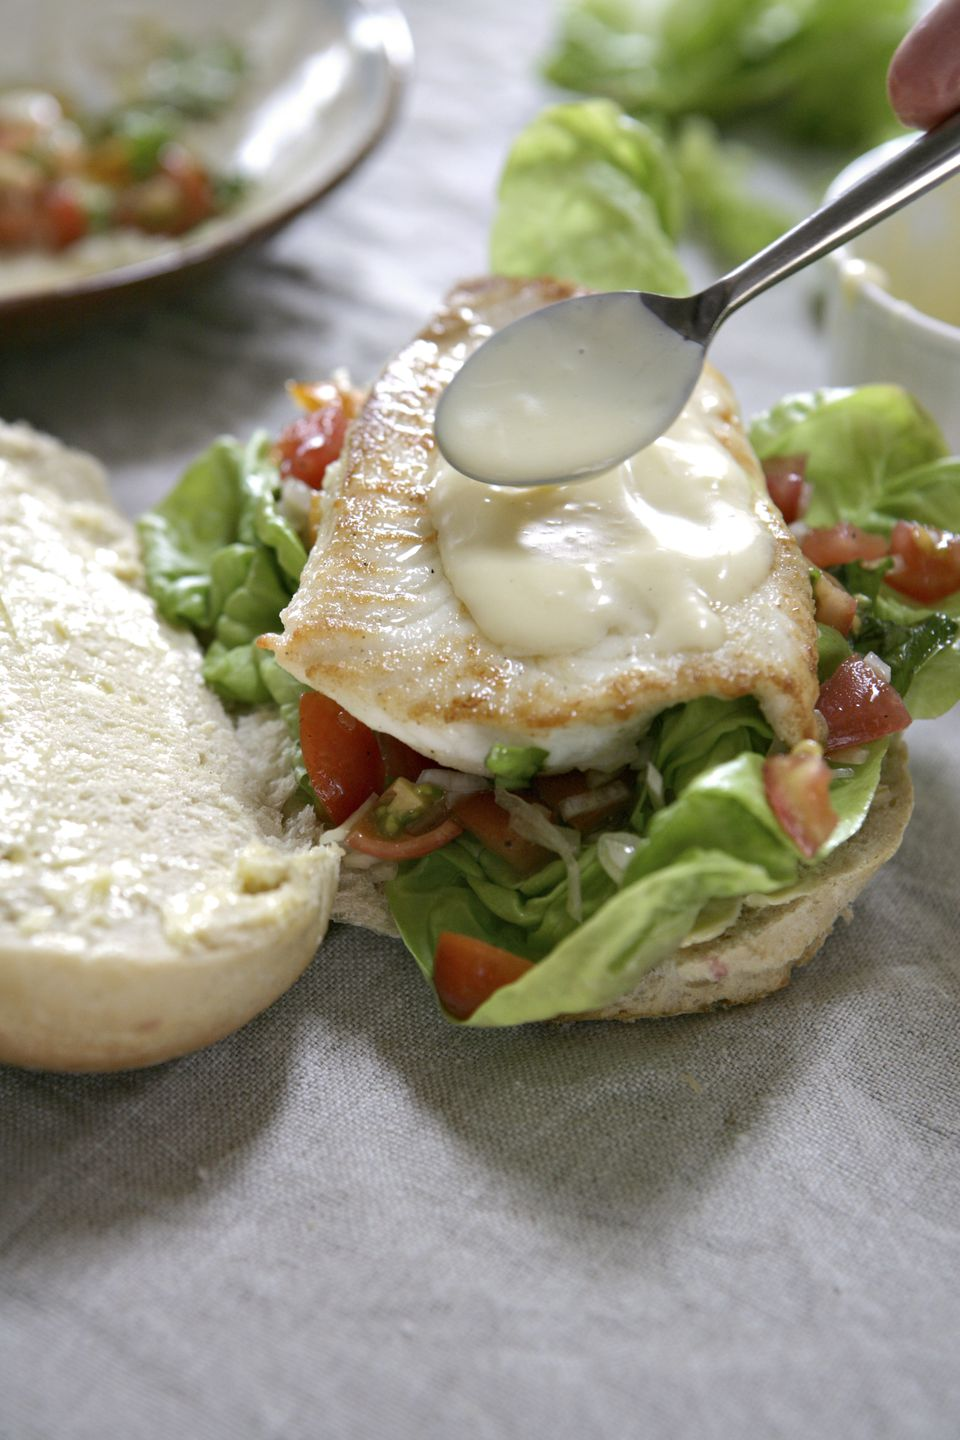 Plaice, lettuce and tomato sandwich